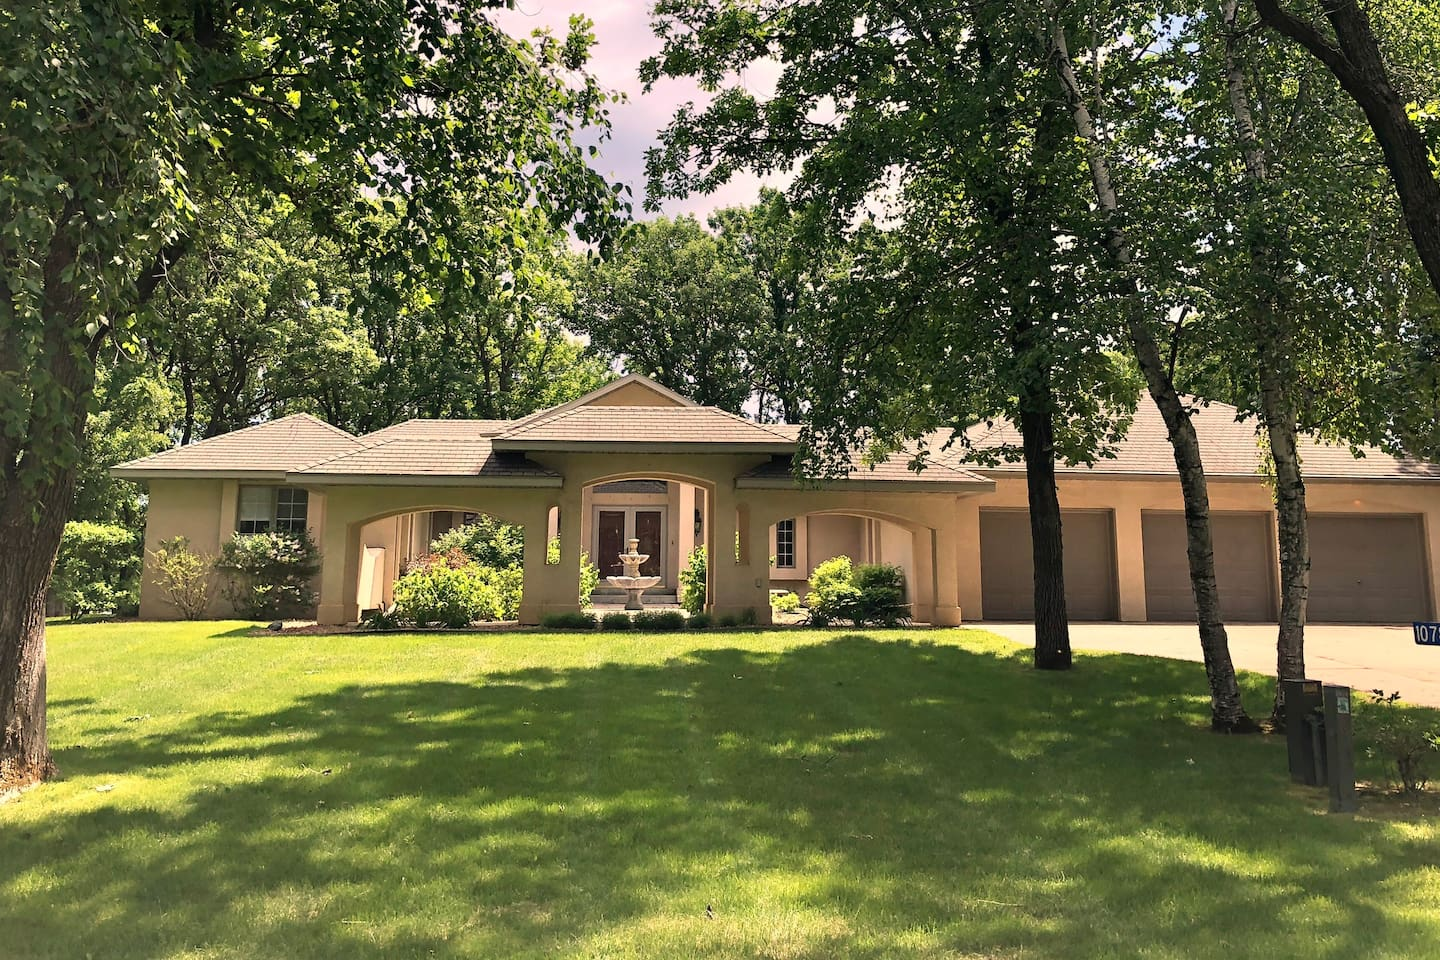 Amazing dream home on the Lake - Houses for Rent in Little Falls ...